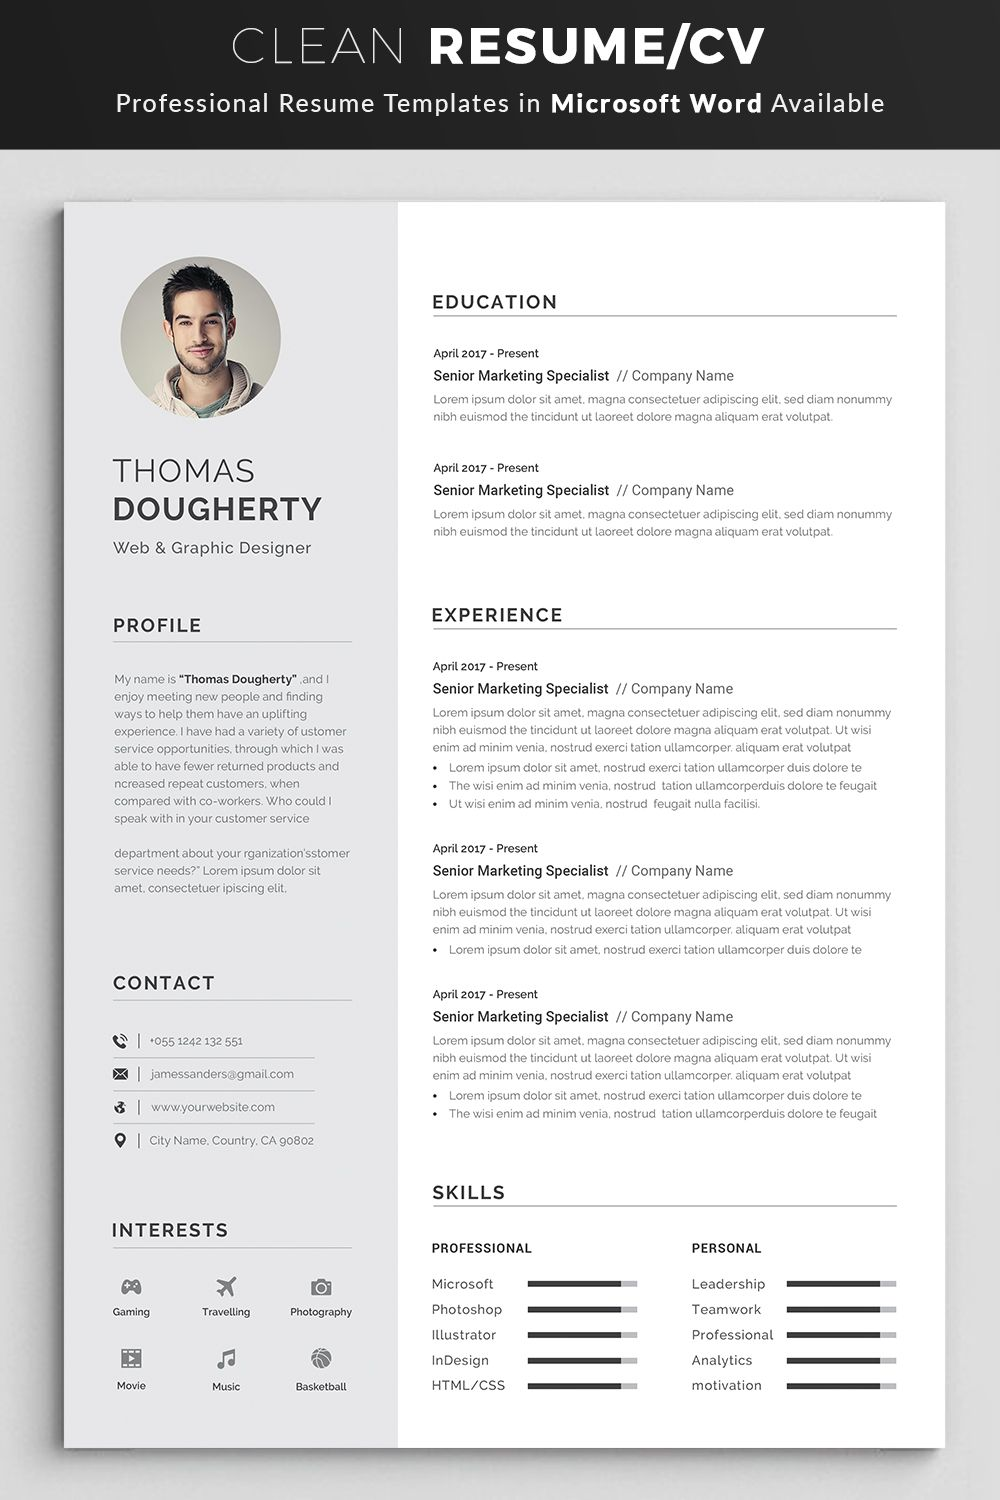 Resume Template Modern Professional Resume Template For Etsy Resume Template Professional Resume Words Resume Template Word